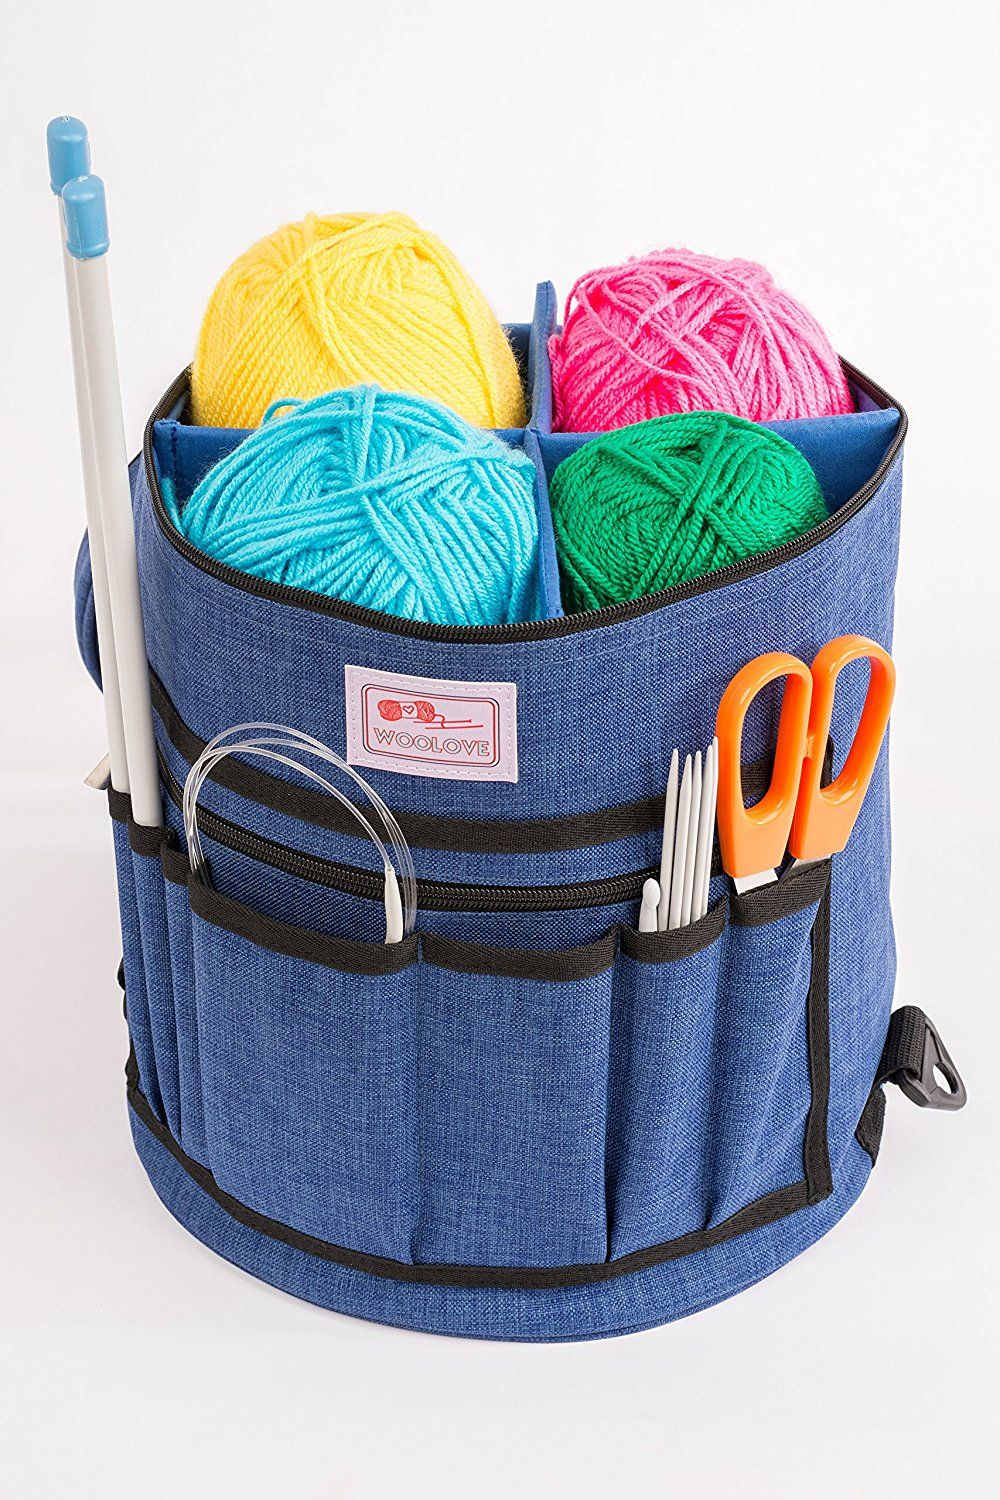 Premium Knitting Bag By Woolove Yarn Holder Blue Xl Portable Tote Organizer For With 4 Detachable Dividers S On Top To Protect Wool